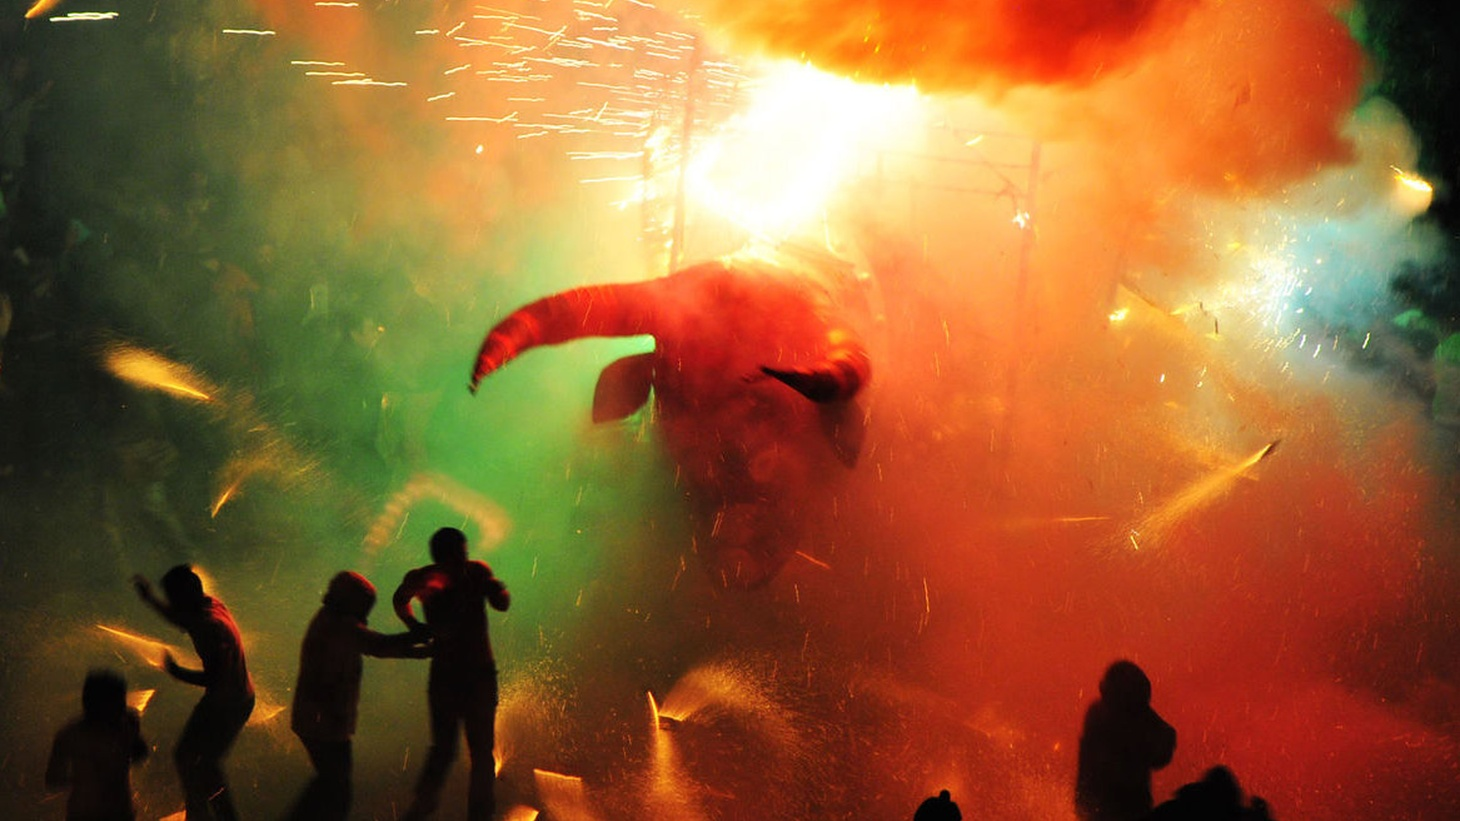 Brimstone and Glory is a fiery trip into a Mexican city's glorious orgy of fireworks.